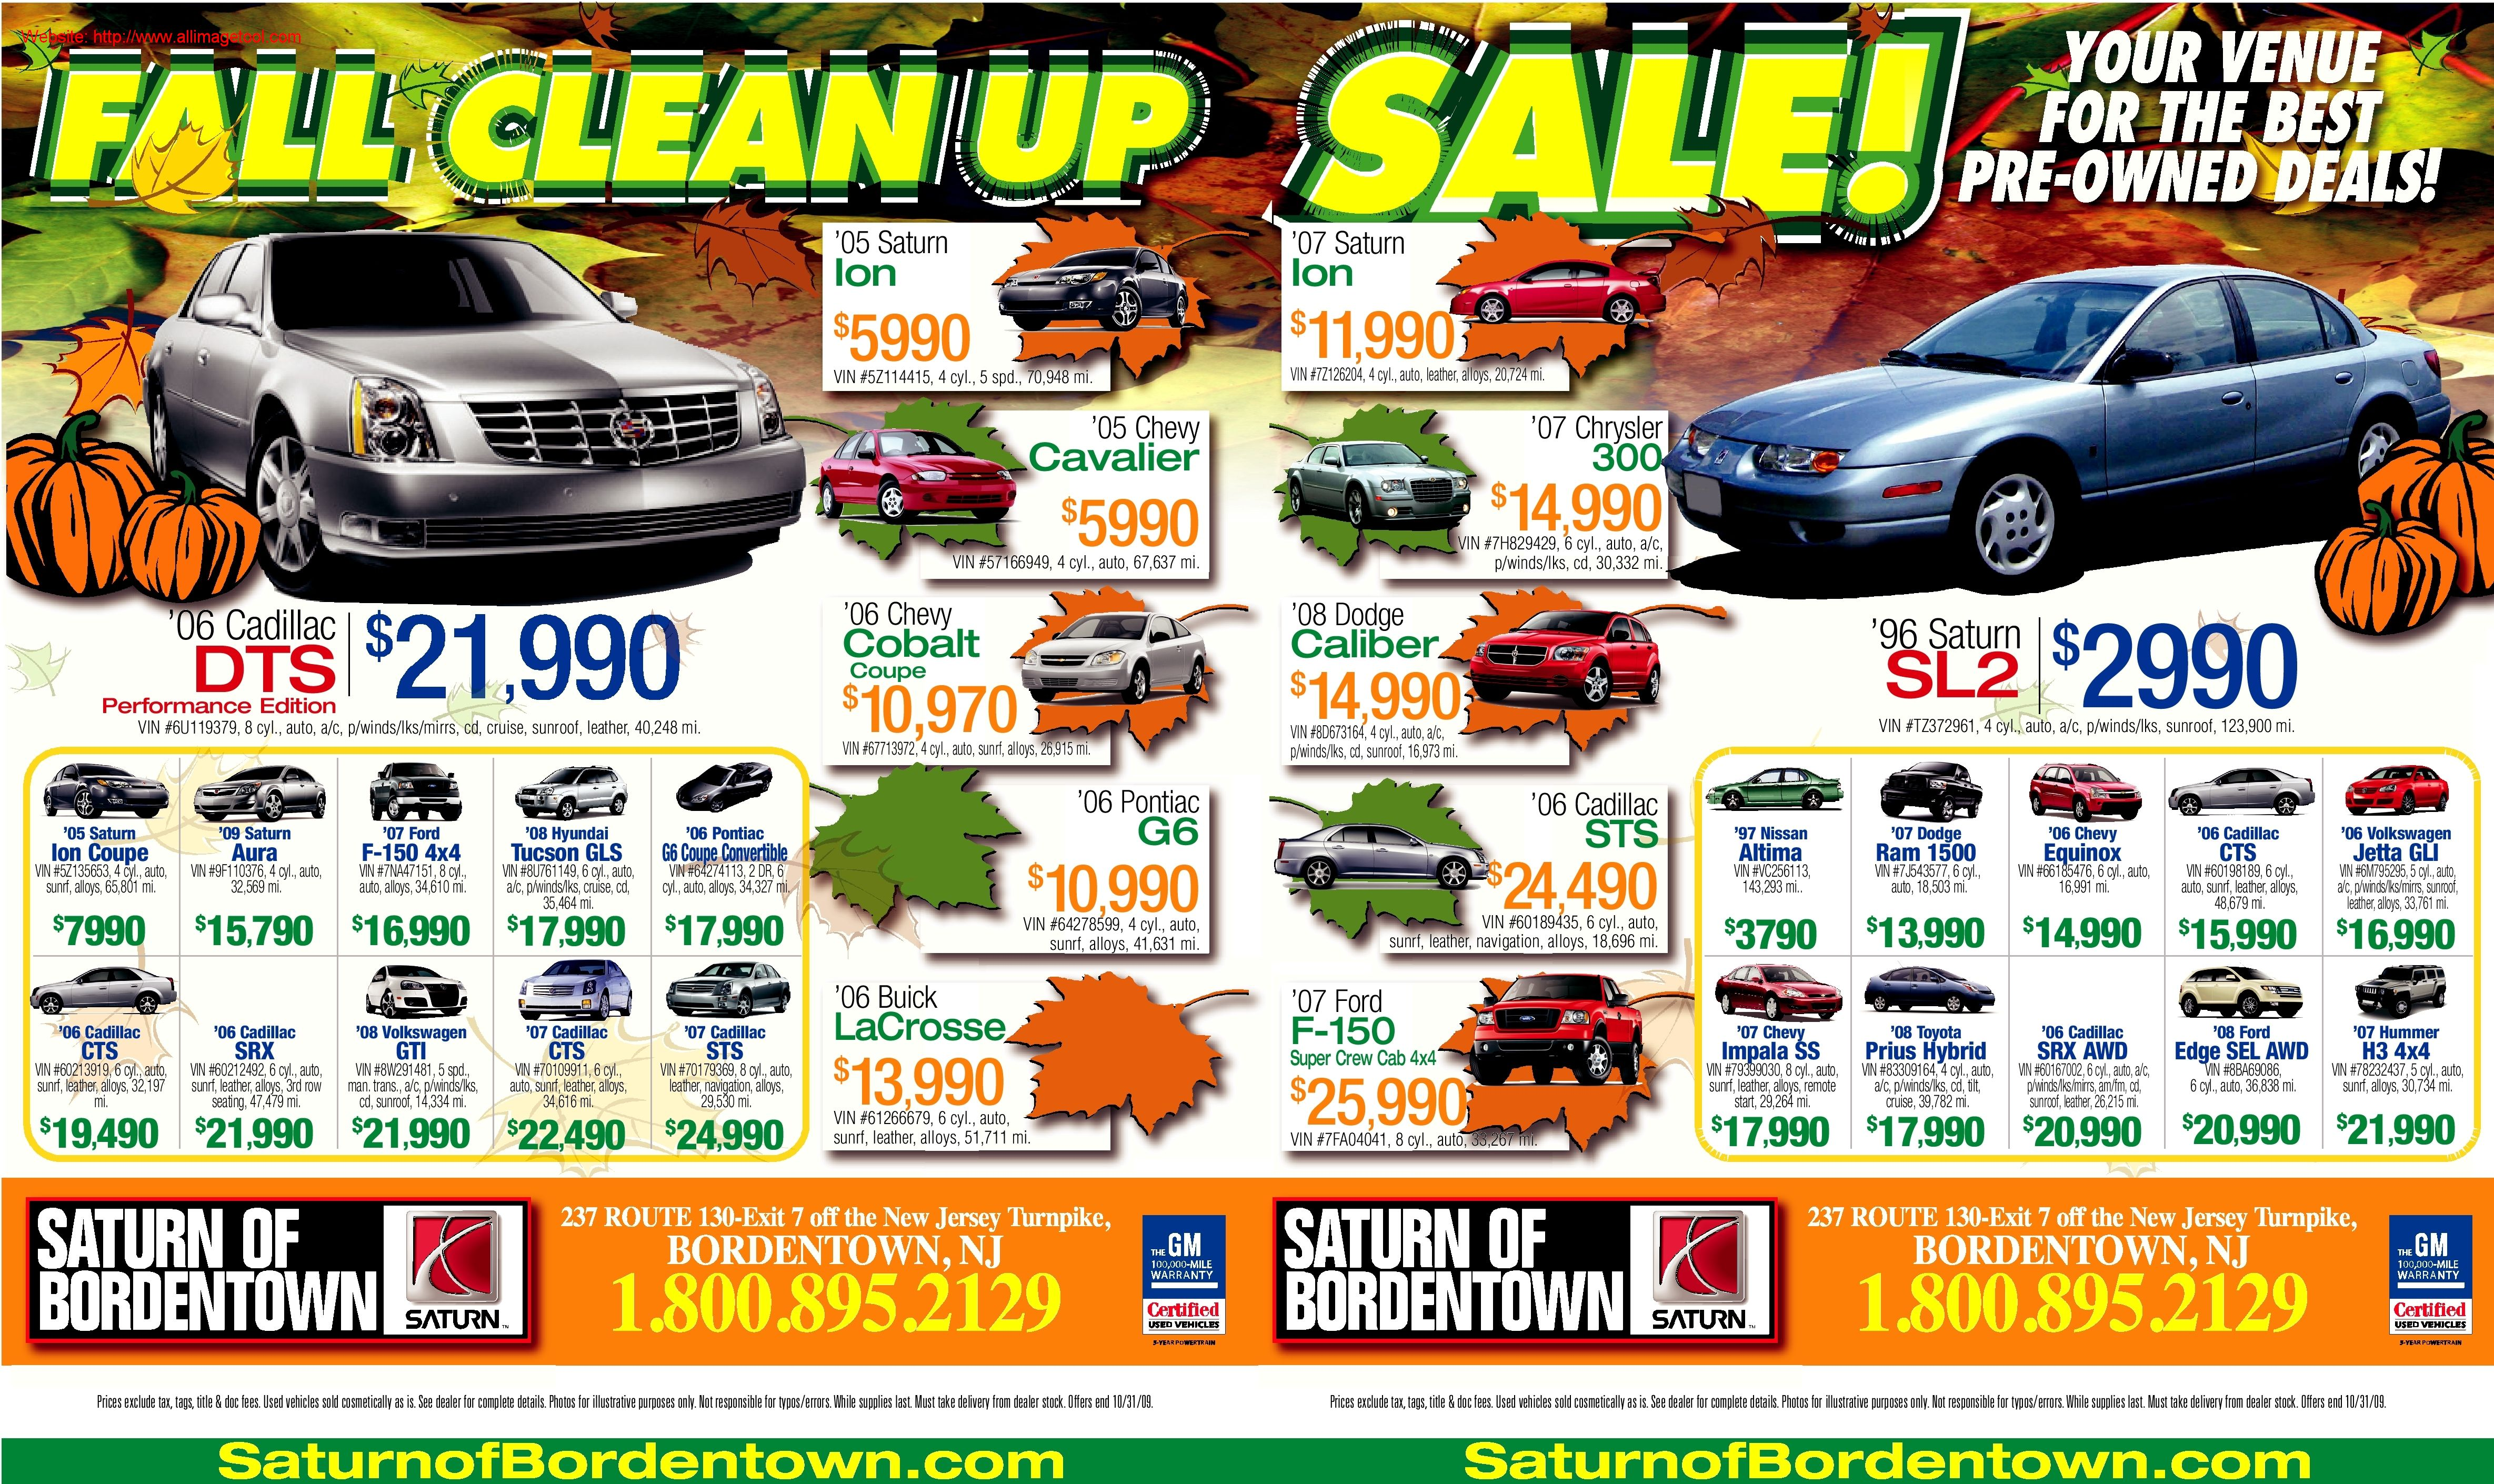 used car deals | The Maguire Auto Blog